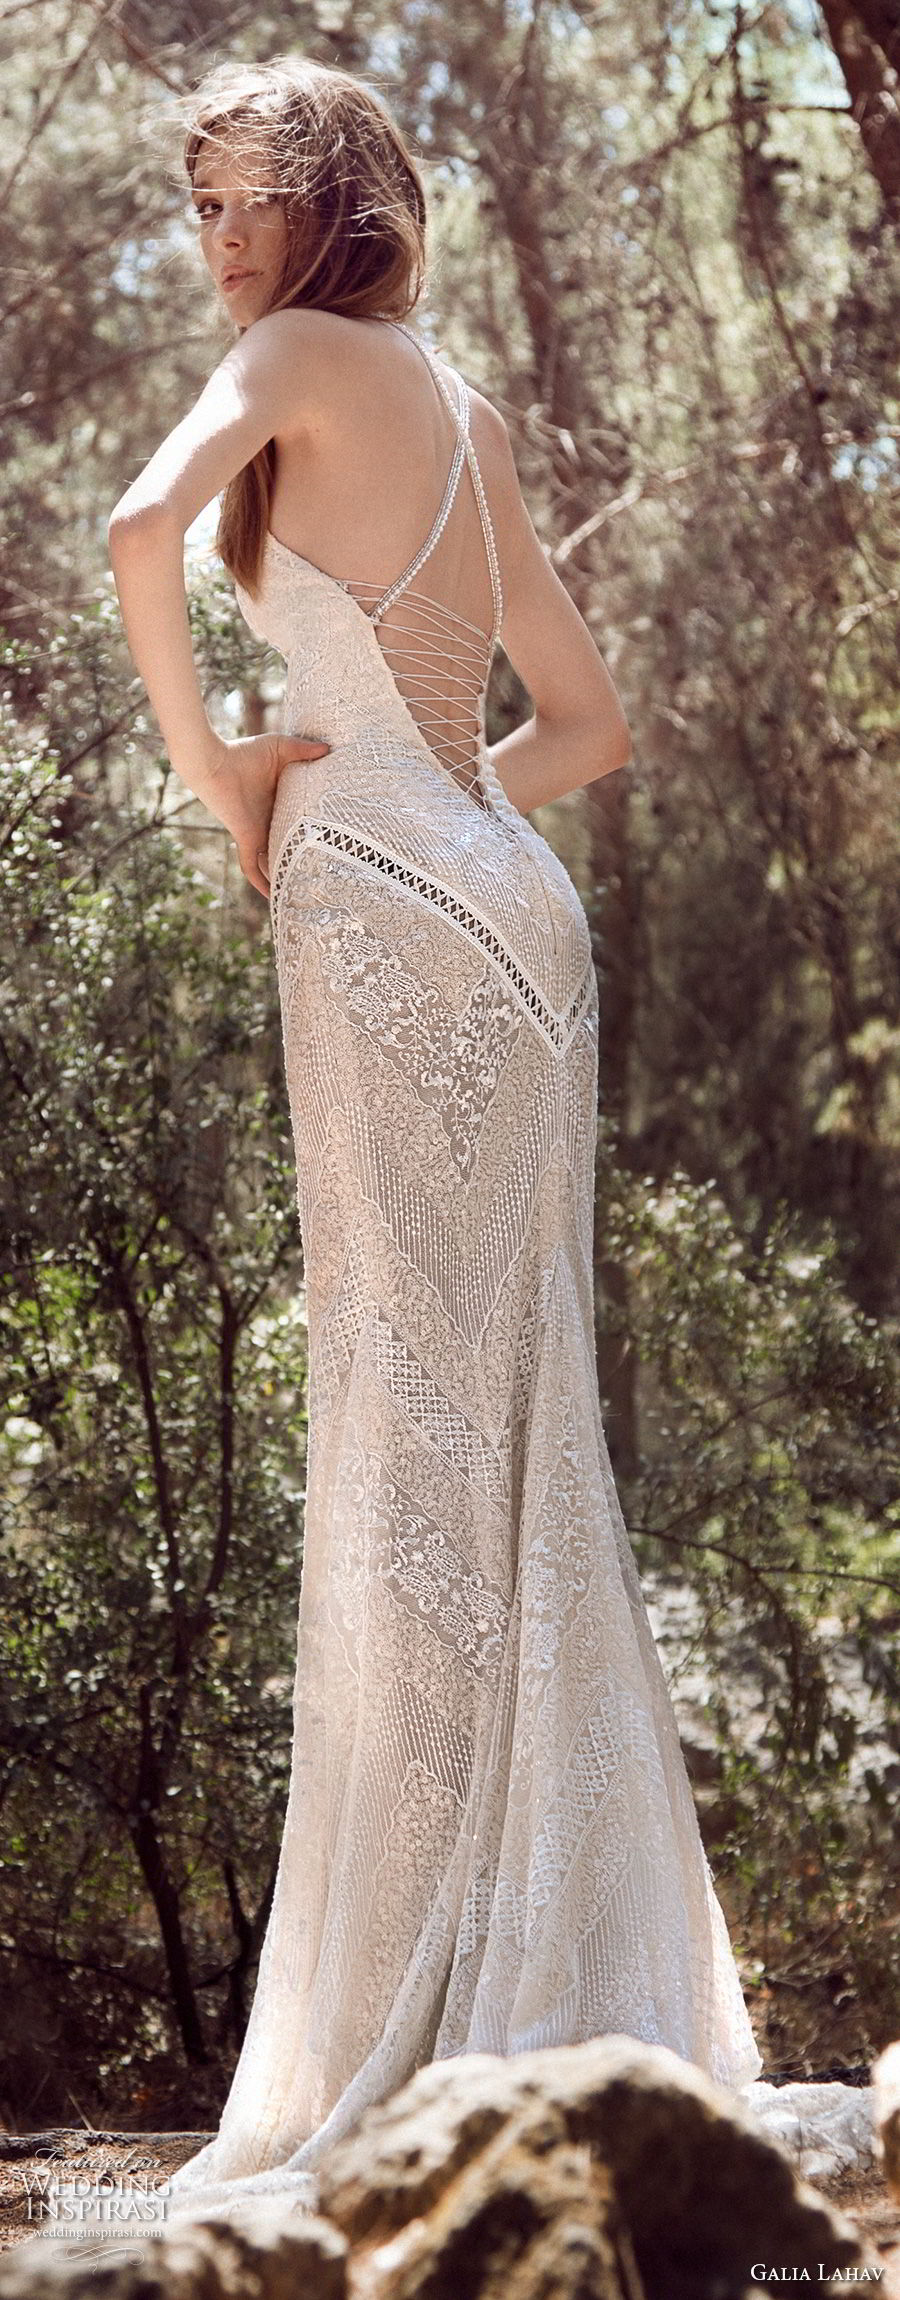 galia lahav gala 4 2018 bridal sleeveless halter jewel neck full embellishment elegant sheath wedding dress open low back short train (910) bv